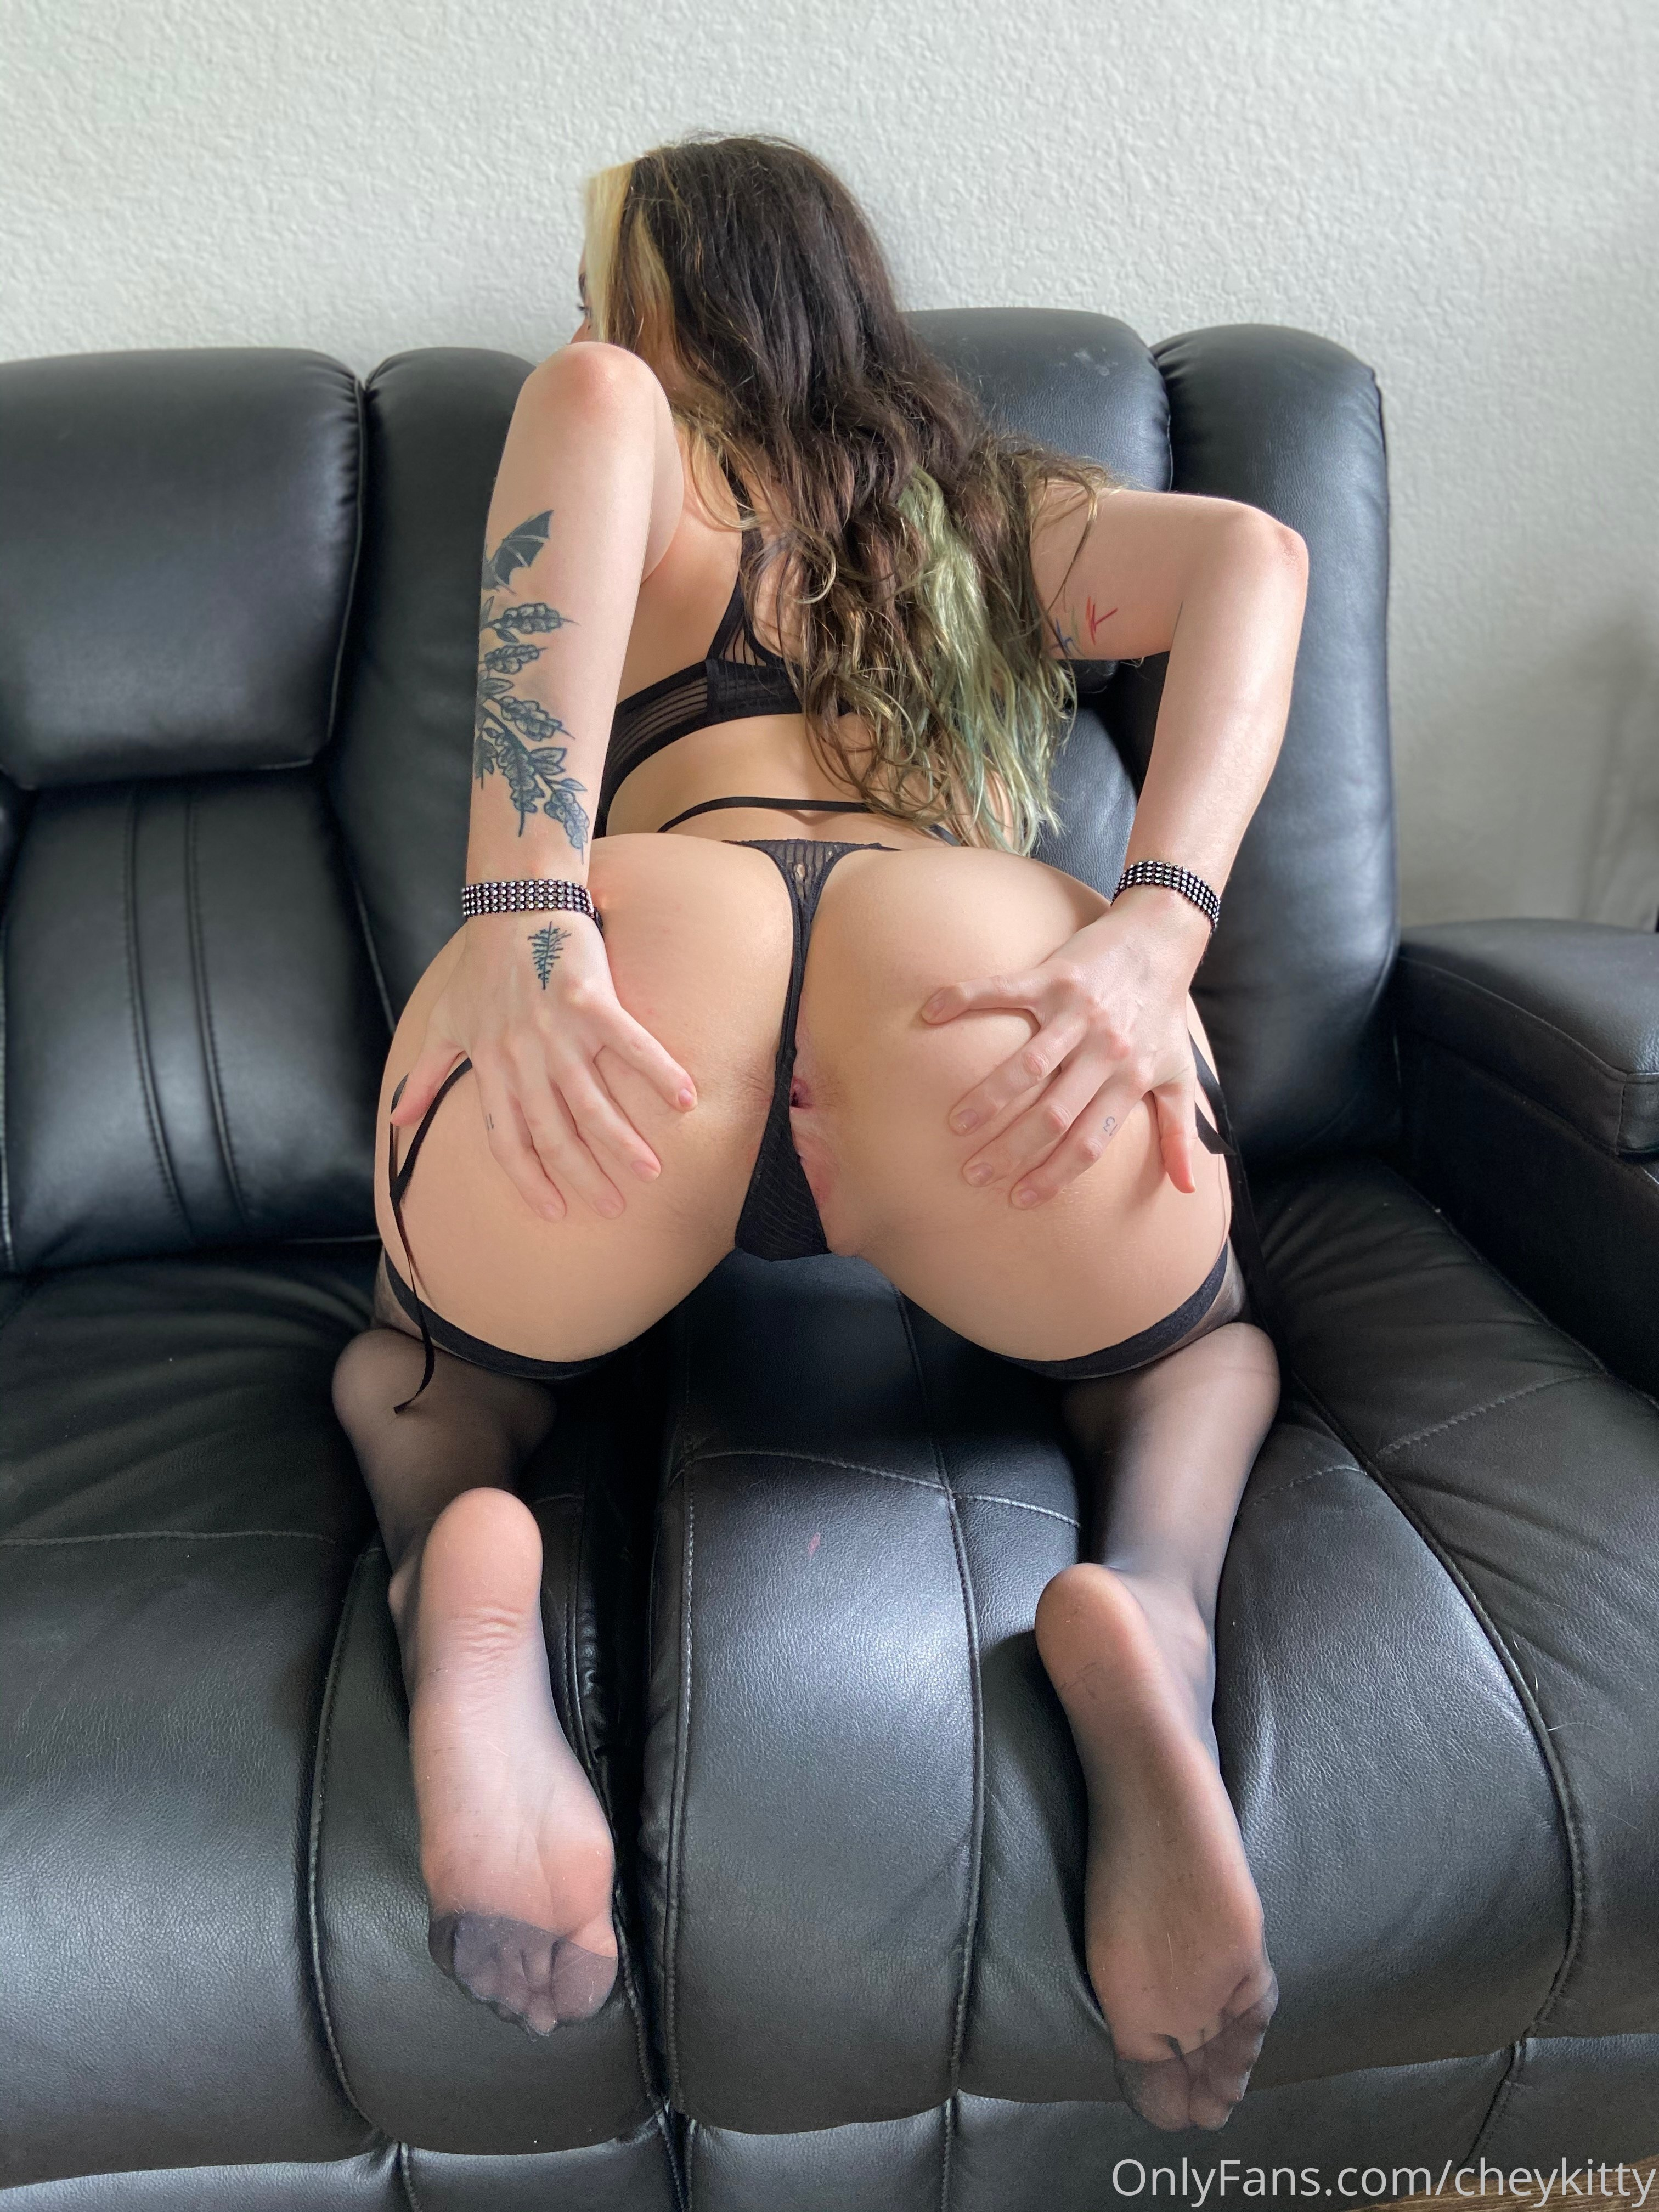 Cheykitty Onlyfans Leaked 0116